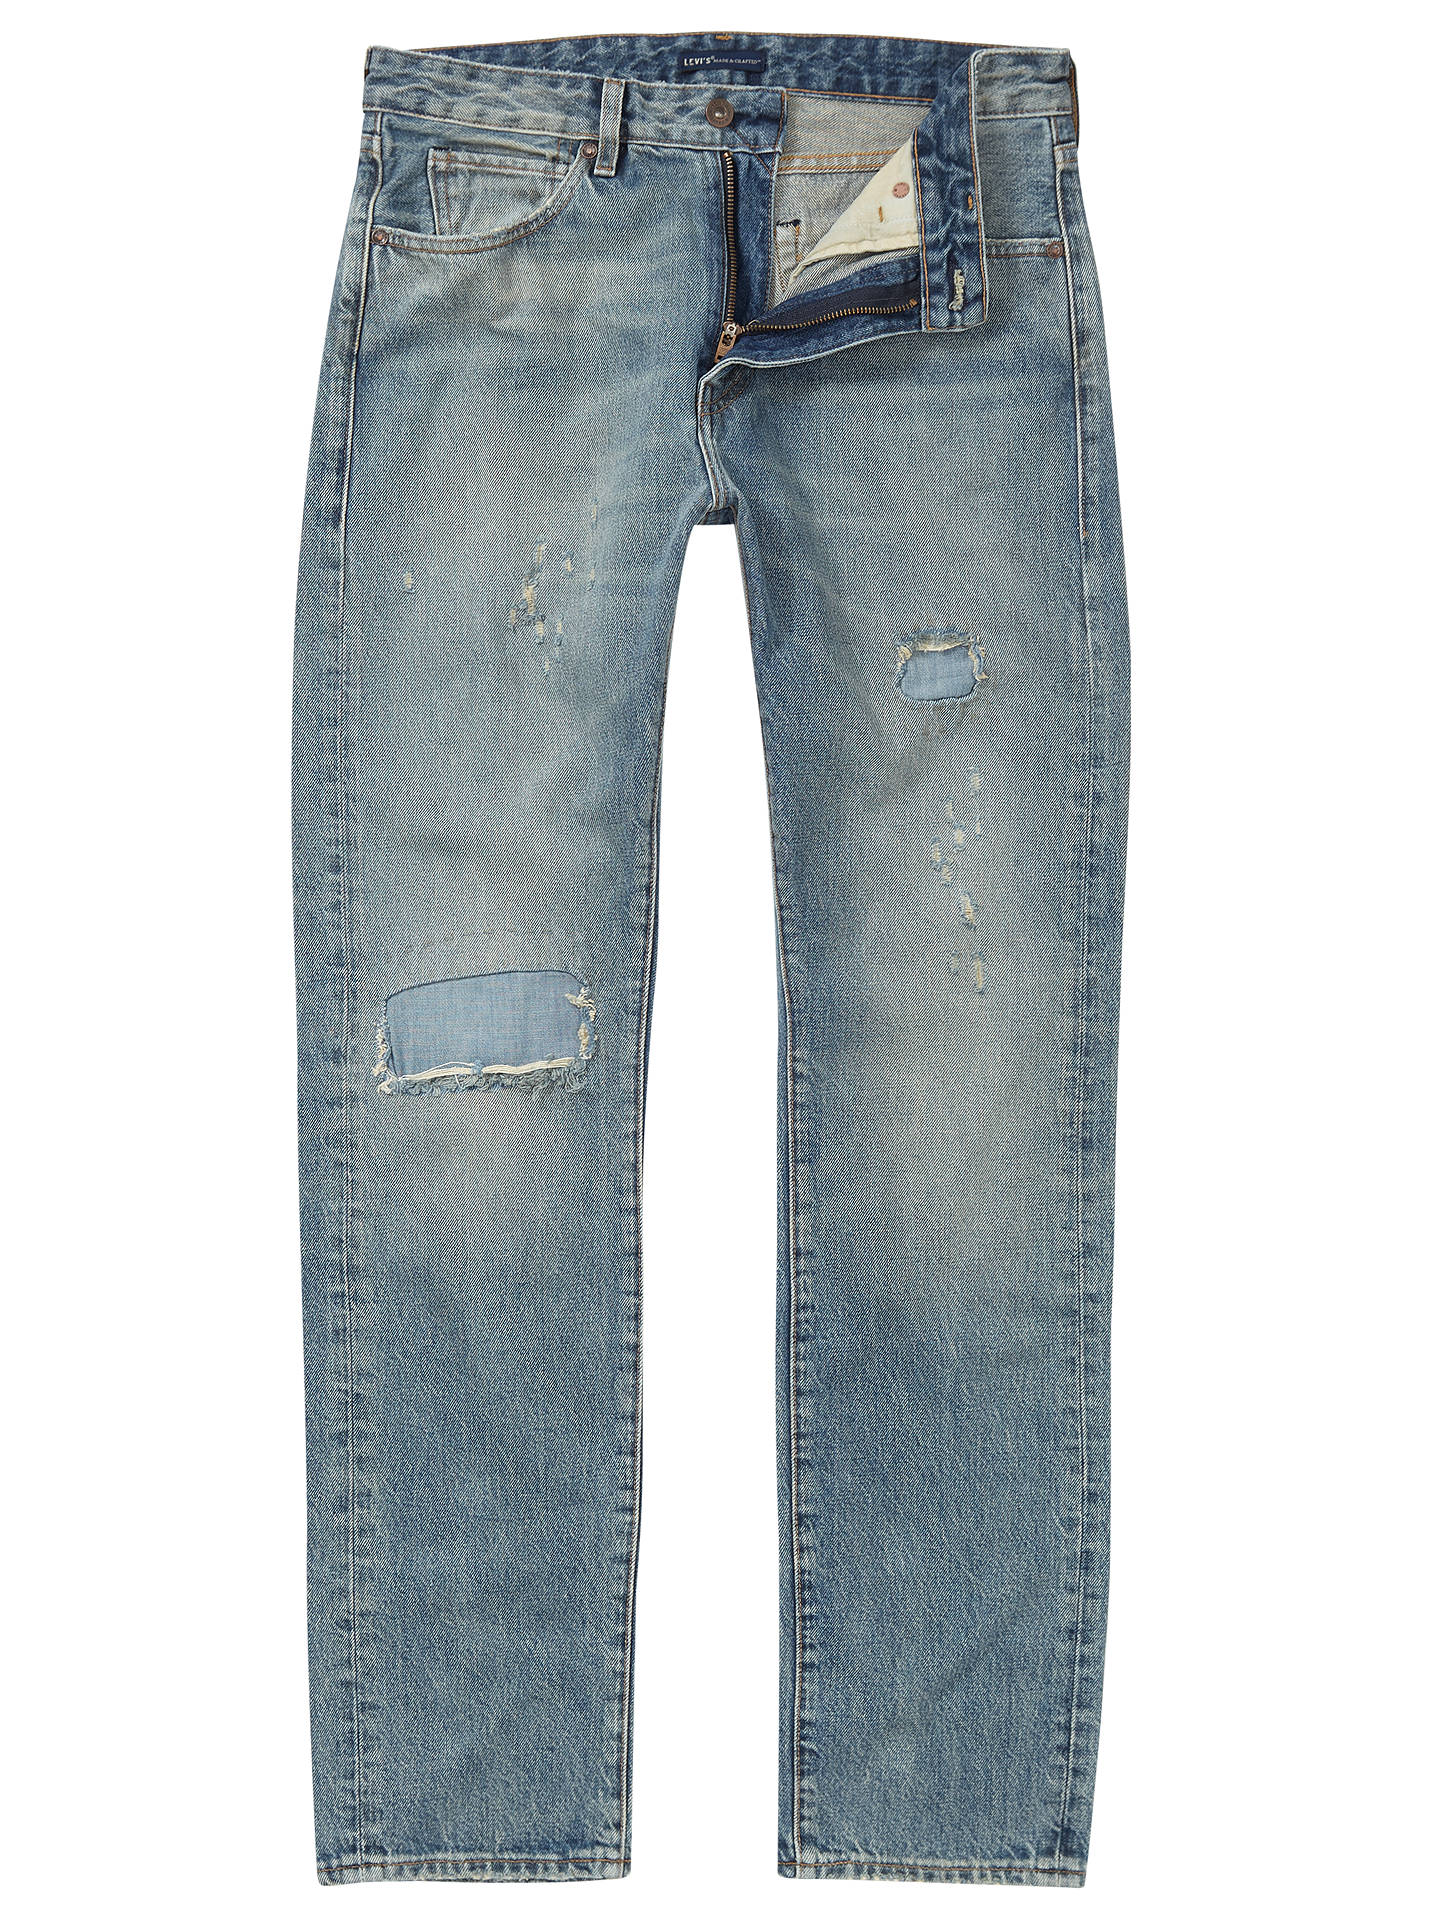 91e1d3f9192 Buy Levi's Made & Crafted Tack Slim Jeans, Light Blue 0267, 32R Online at  ...